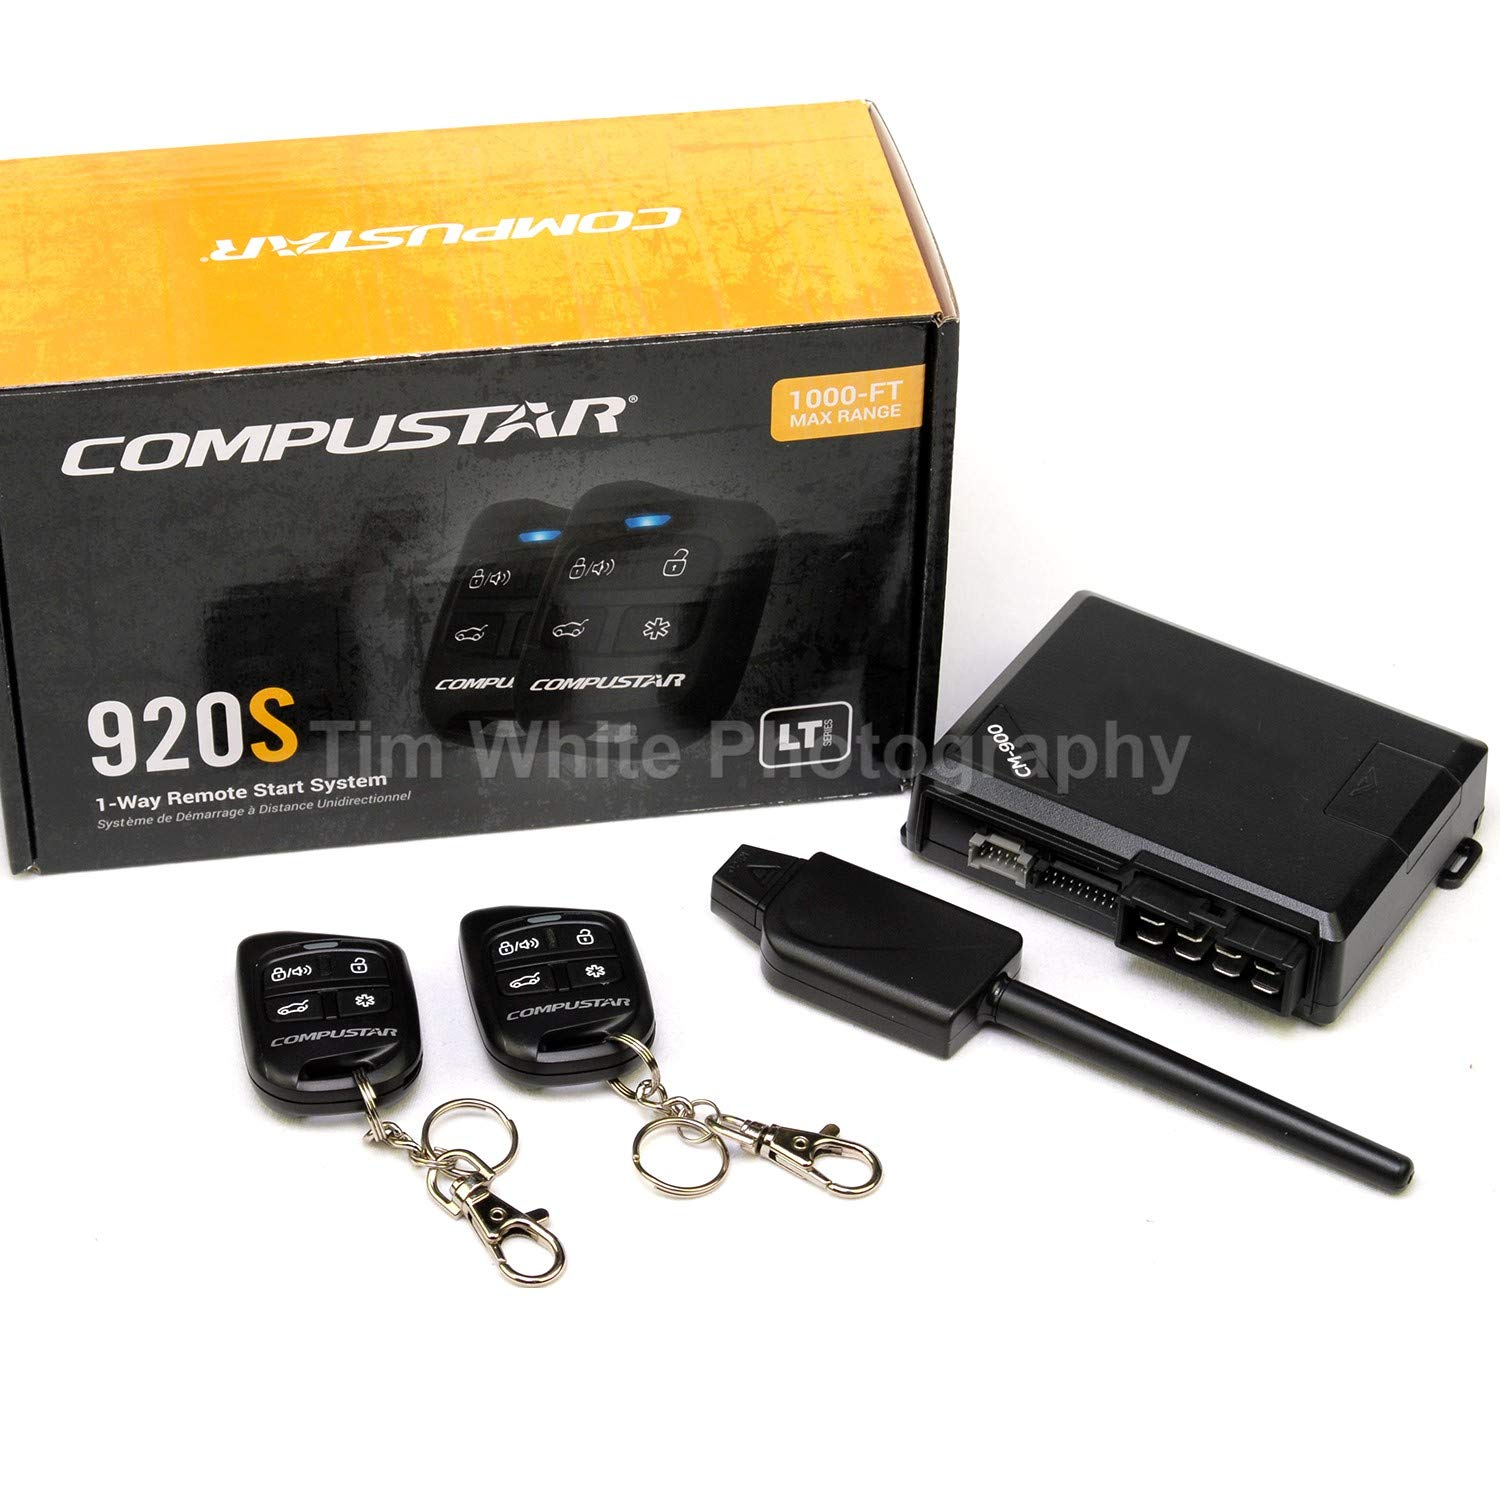 Compustar CS920-S (920S) 1-way Remote Start and Keyless Entry System with 1000-ft Range by Compustar (Image #3)